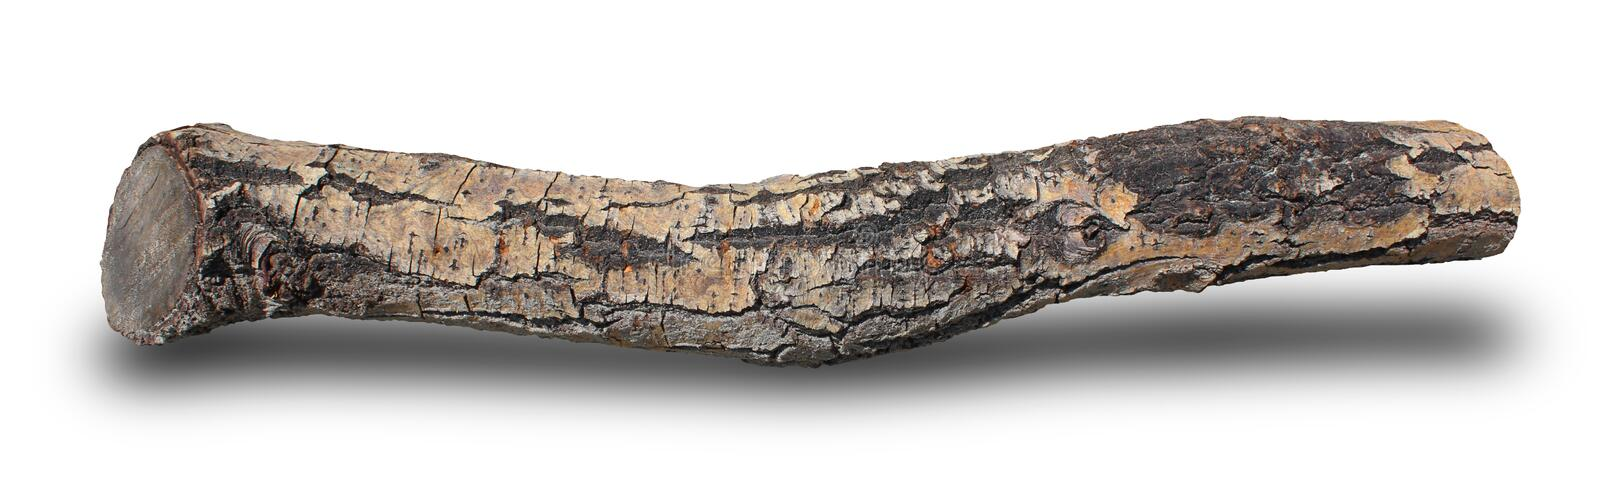 A piece of wood from nature stock photography